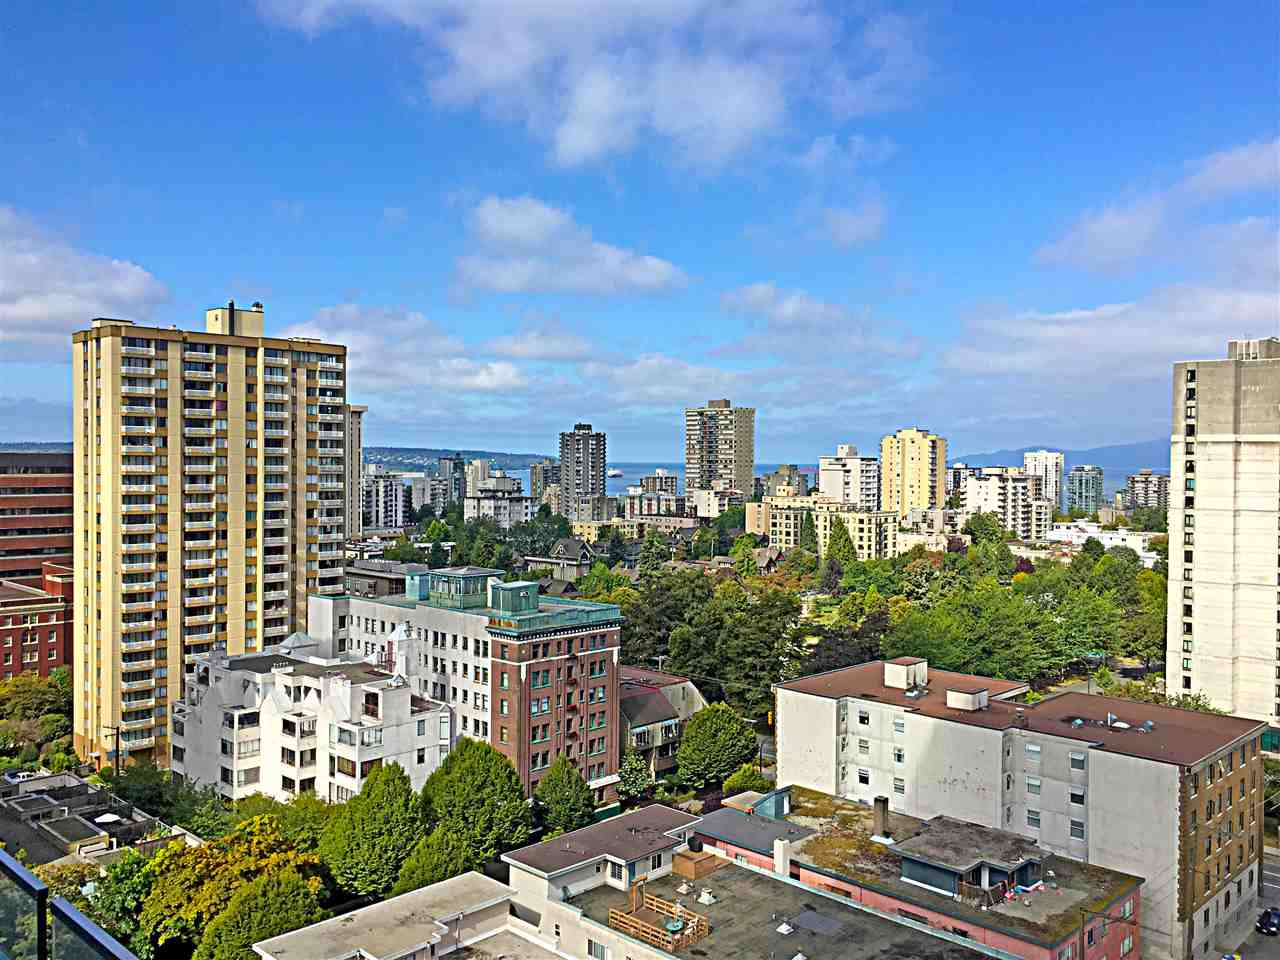 Photo 3: 1805 1028 BARCLAY STREET in Vancouver: West End VW Condo for sale (Vancouver West)  : MLS® # R2096950